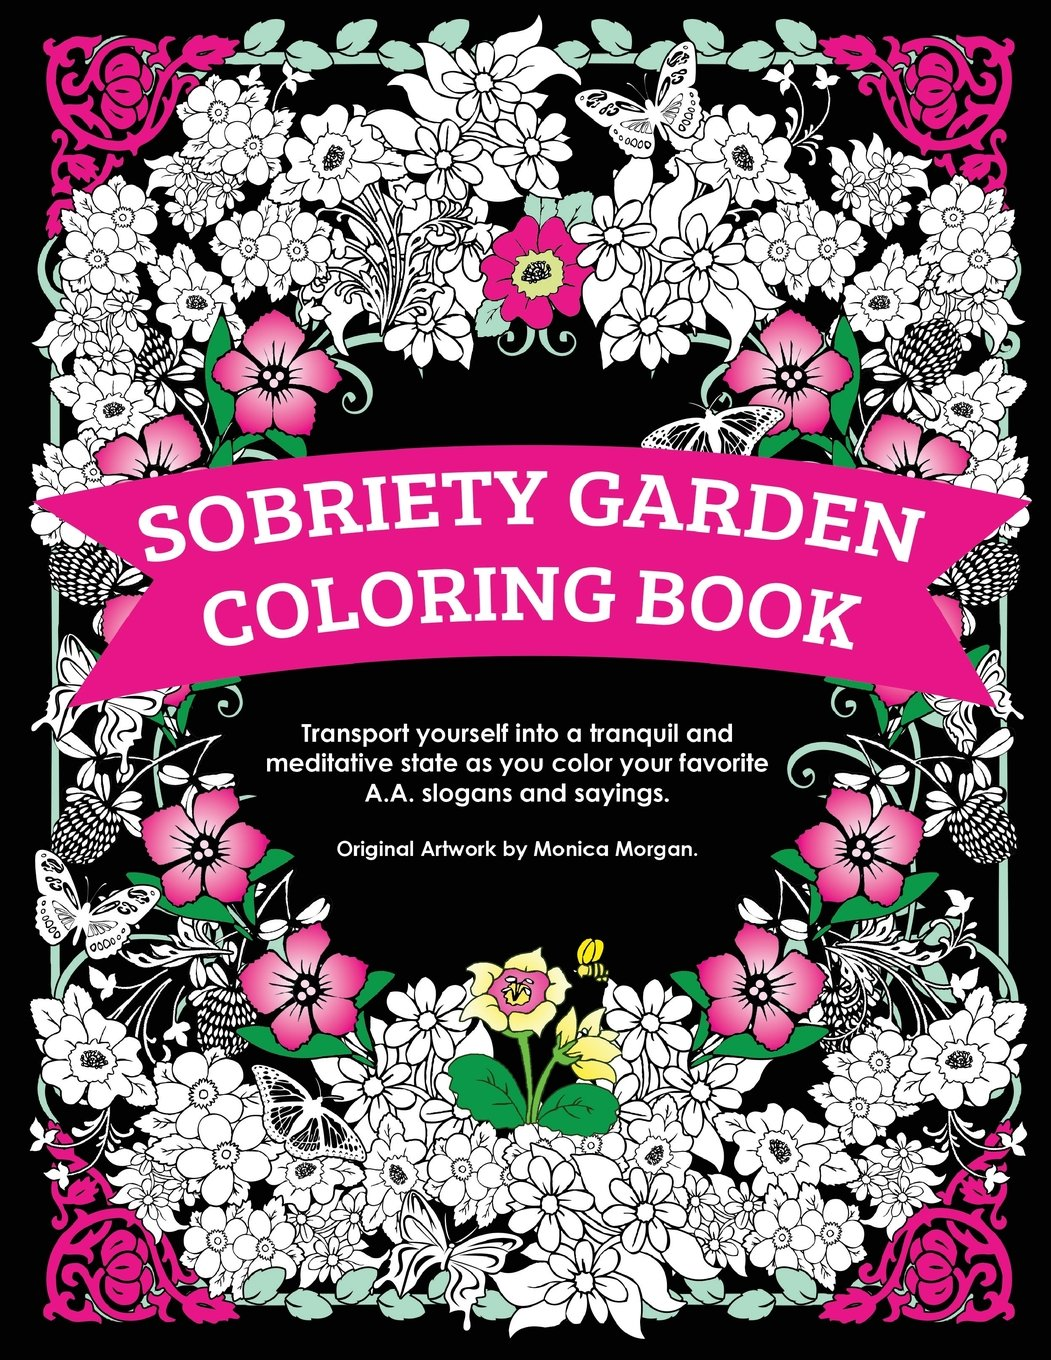 Amazon.com: Sobriety Garden Coloring Book: Transport yourself into a ...